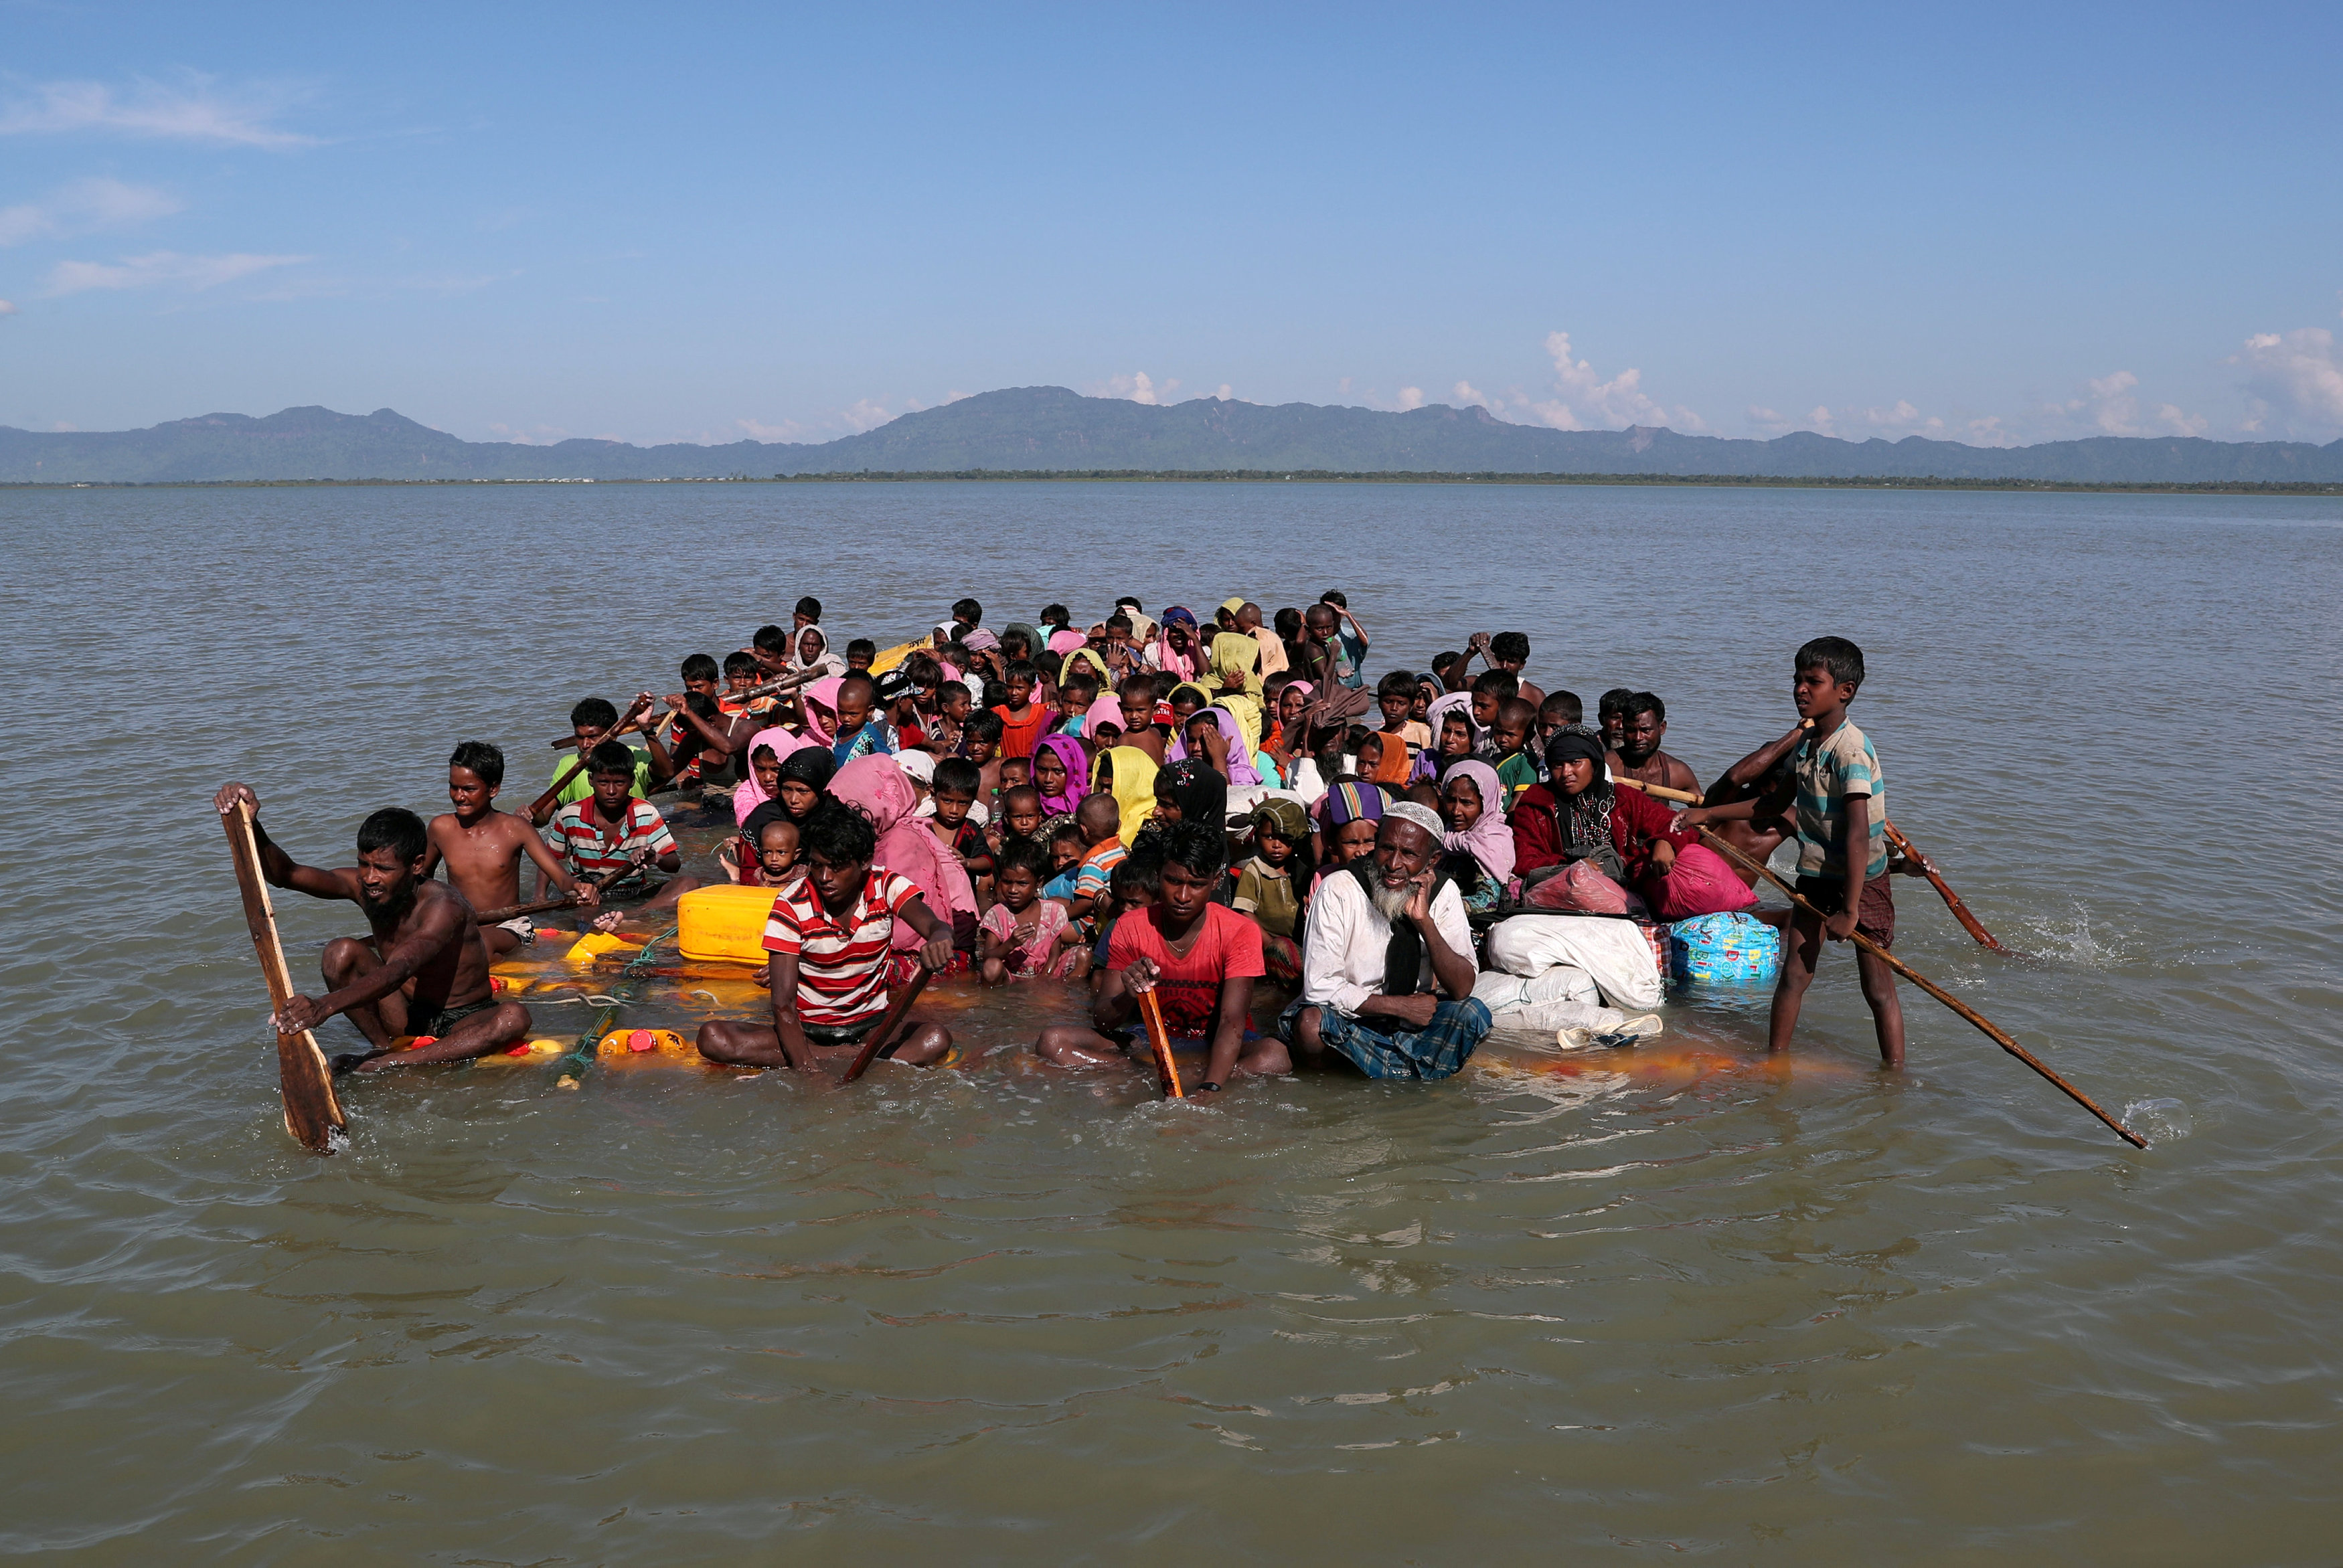 FILE PHOTO: Rohingya refugees cross the Naf River with an improvised raft to reach to Bangladesh at Sabrang near Teknaf, Bangladesh November 10, 2017. REUTERS/Mohammad Ponir Hossain/File Photo